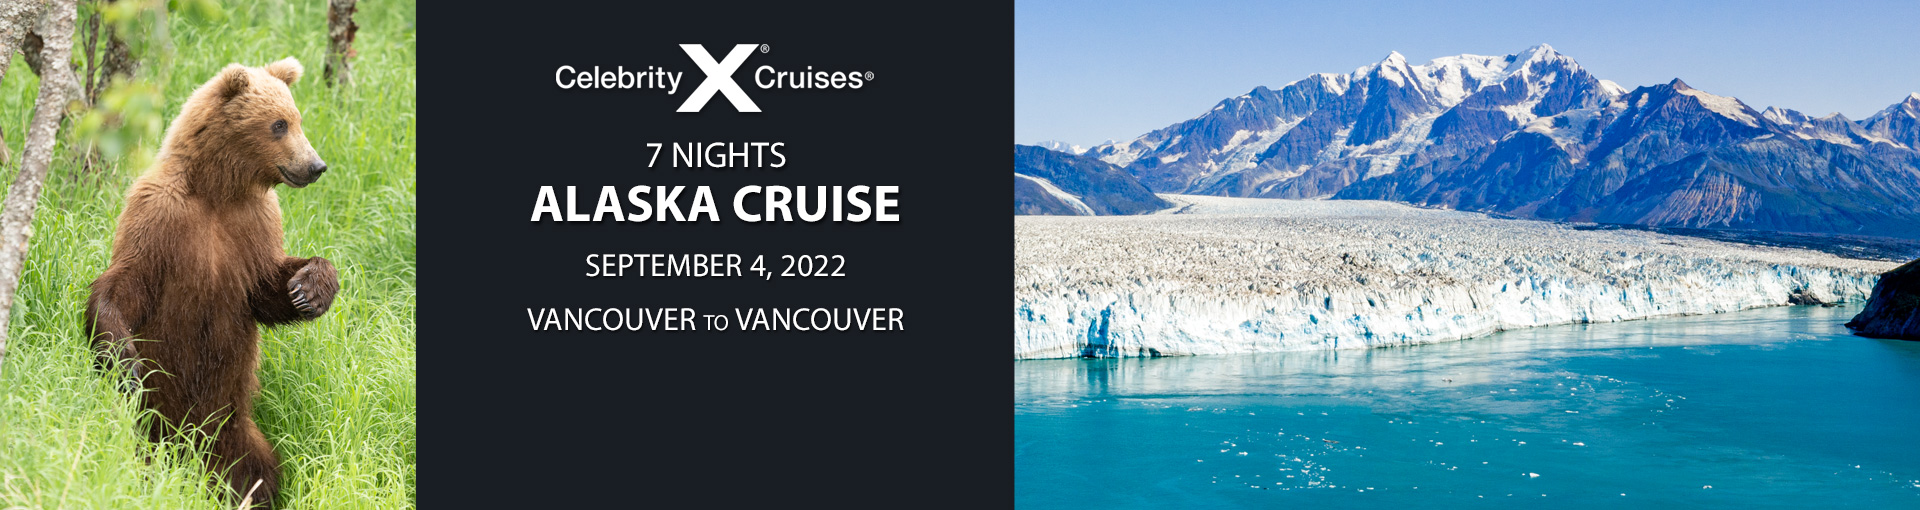 Exclusive Travelzoo offer for Celebrity Cruises' Alaska with Hubbard Glacier Itinerary